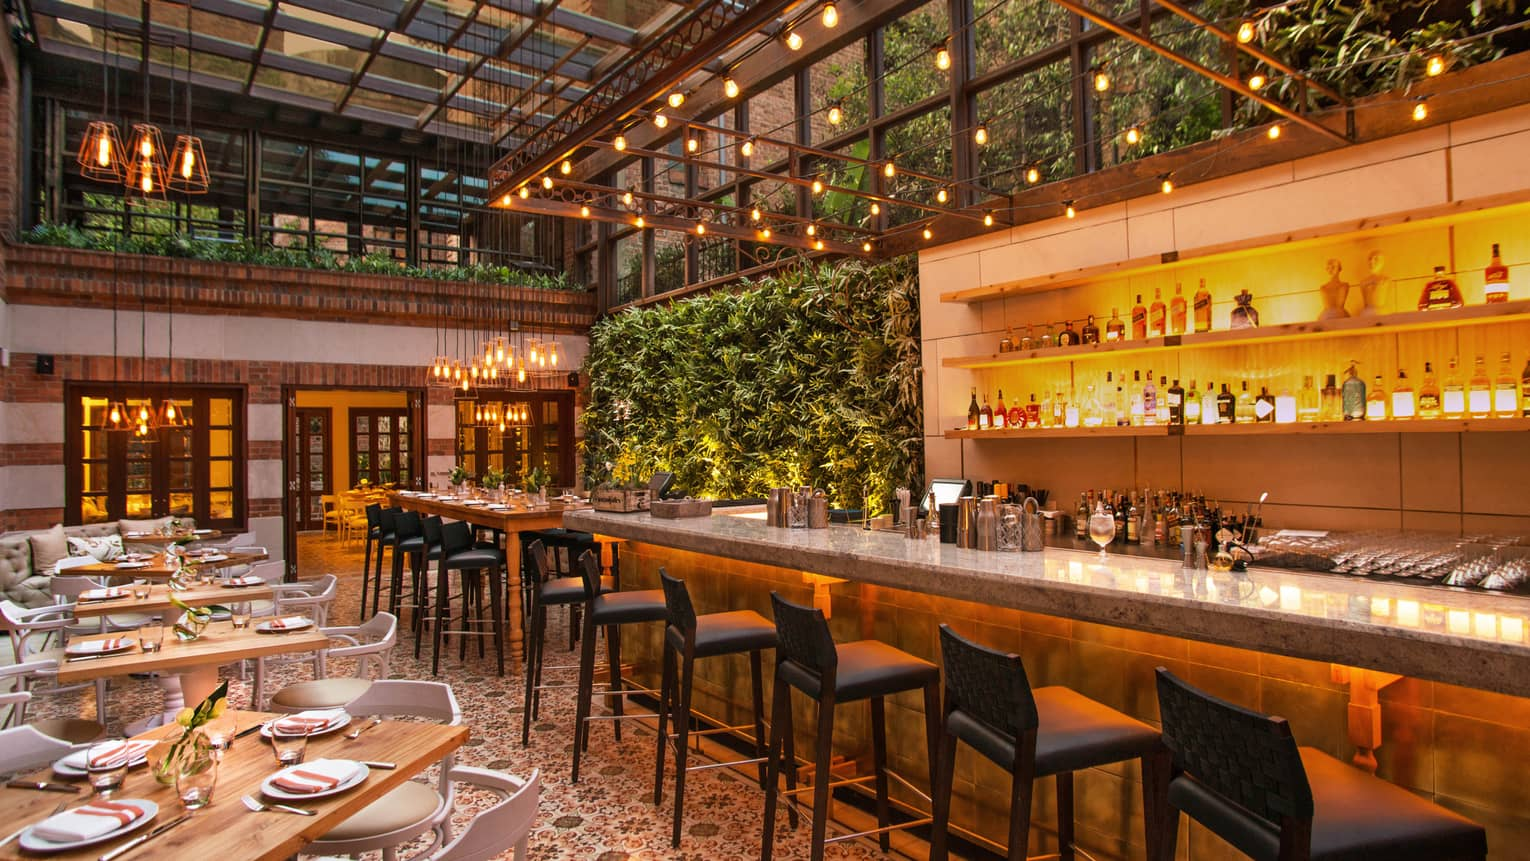 Castanyoles dining room and bar with high ceilings, Spanish-style decor, living walls with lush green plants, patio lights